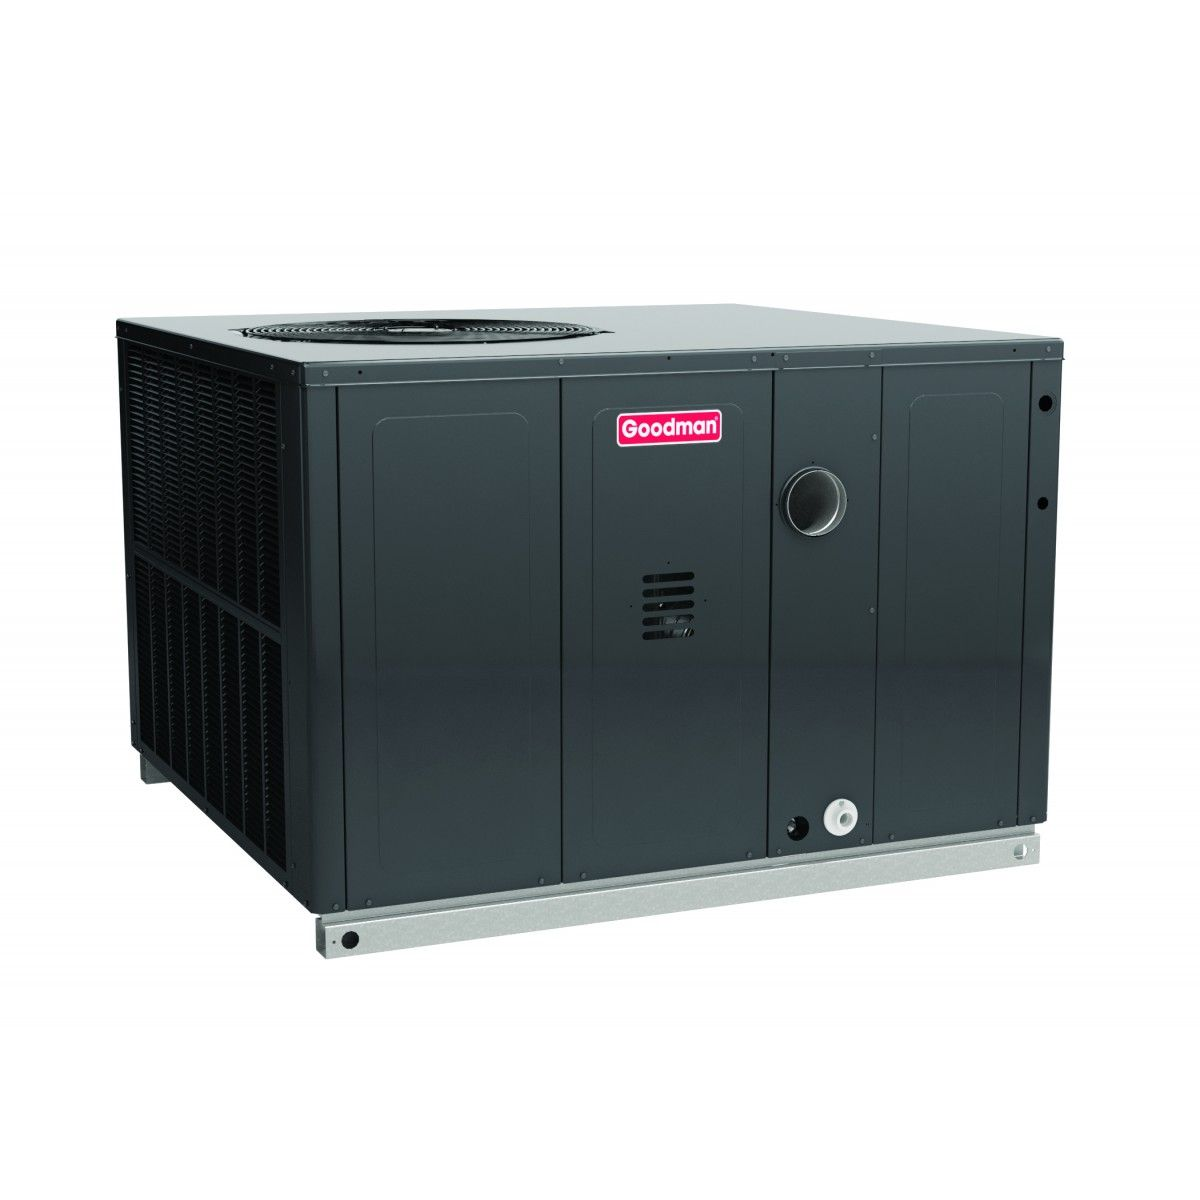 #C50649 Self Contained Mobile Home Air Conditioning Units Best  Best 9393 Air Conditioning Units For Heavy Equipment photos with 1200x1200 px on helpvideos.info - Air Conditioners, Air Coolers and more